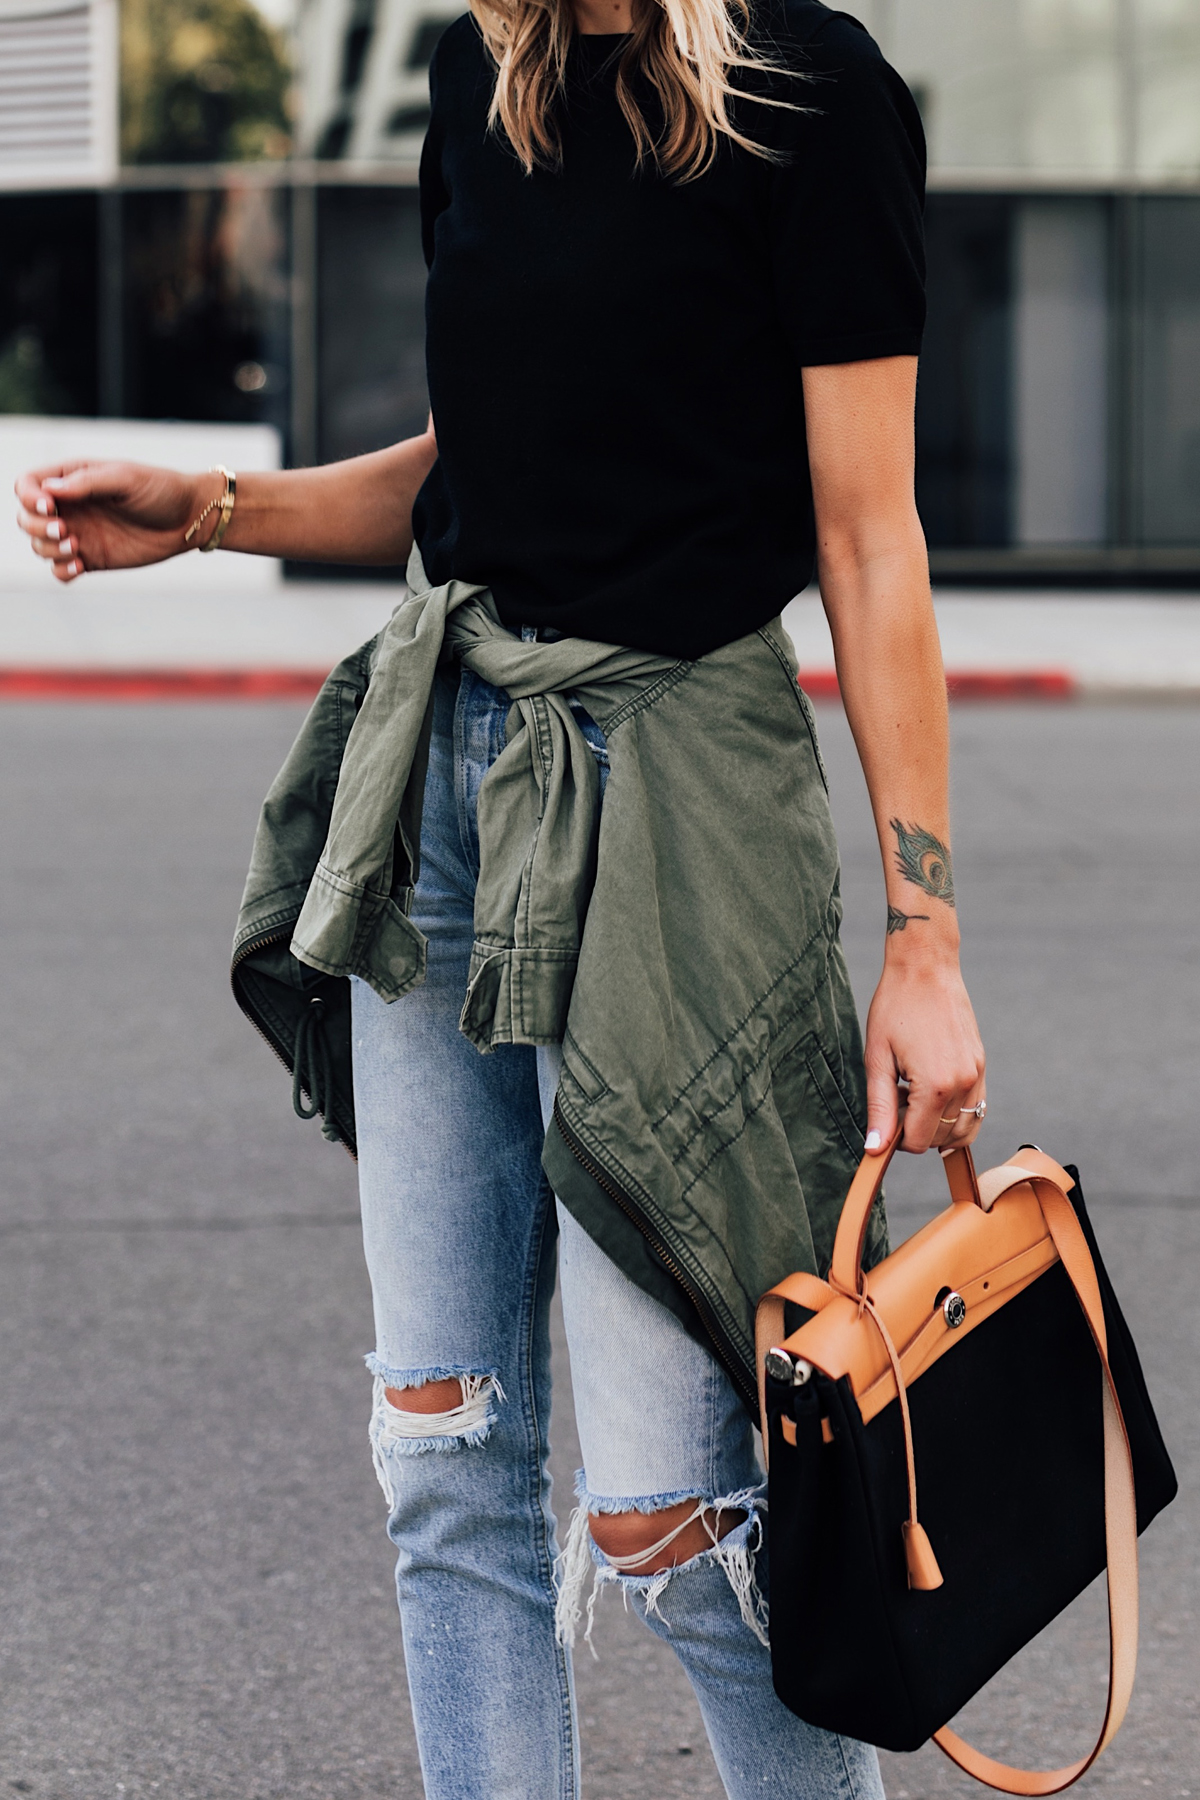 95c0f59a2 Woman Wearing Fashion Jackson Wearing Short Sleeve Black Top Denim Ripped  Skinny Jeans Green Utility Jacket